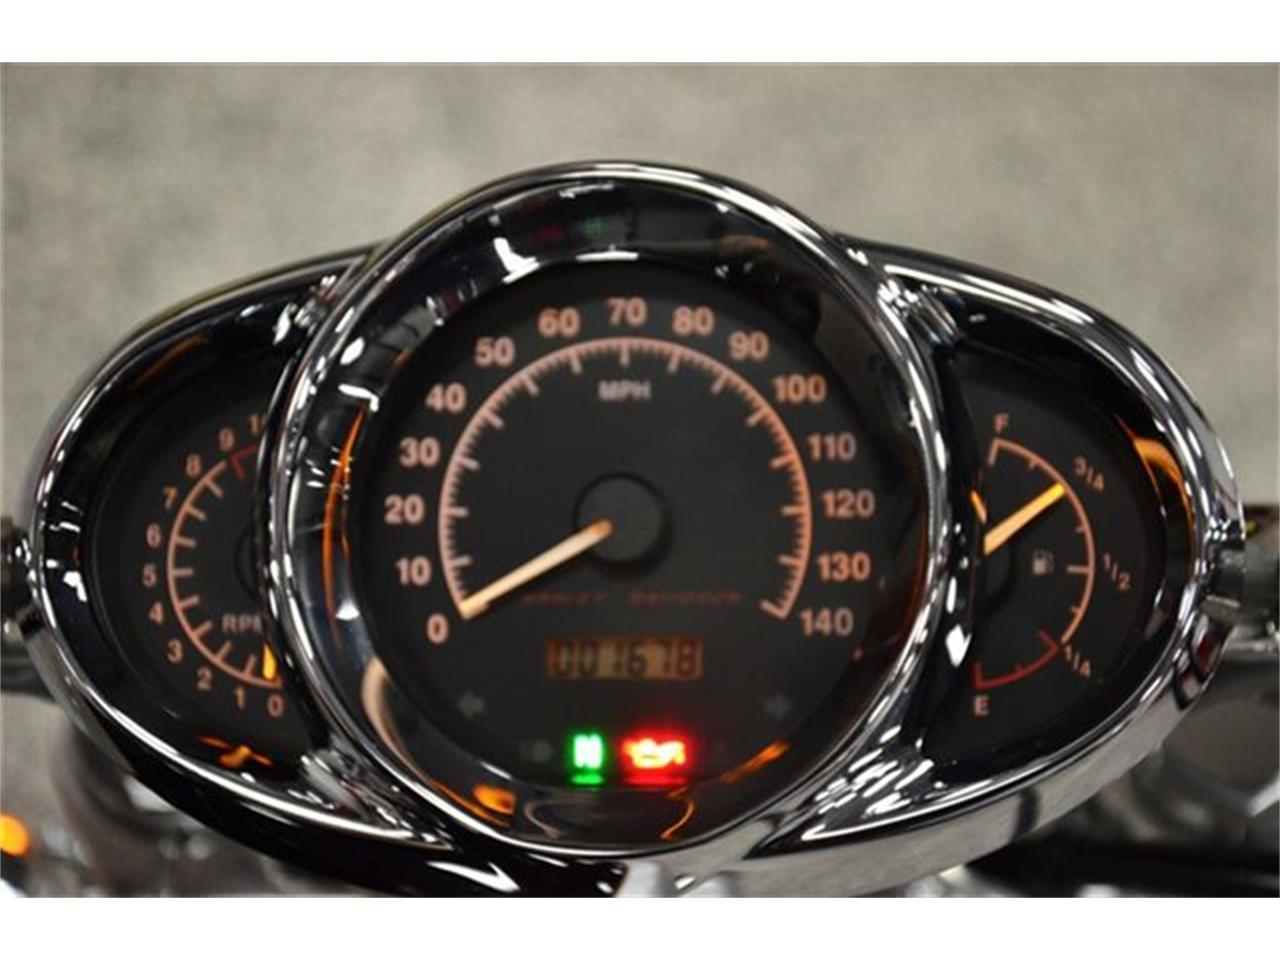 2003 Harley-Davidson VRSC for sale in Plainfield, IL – photo 20